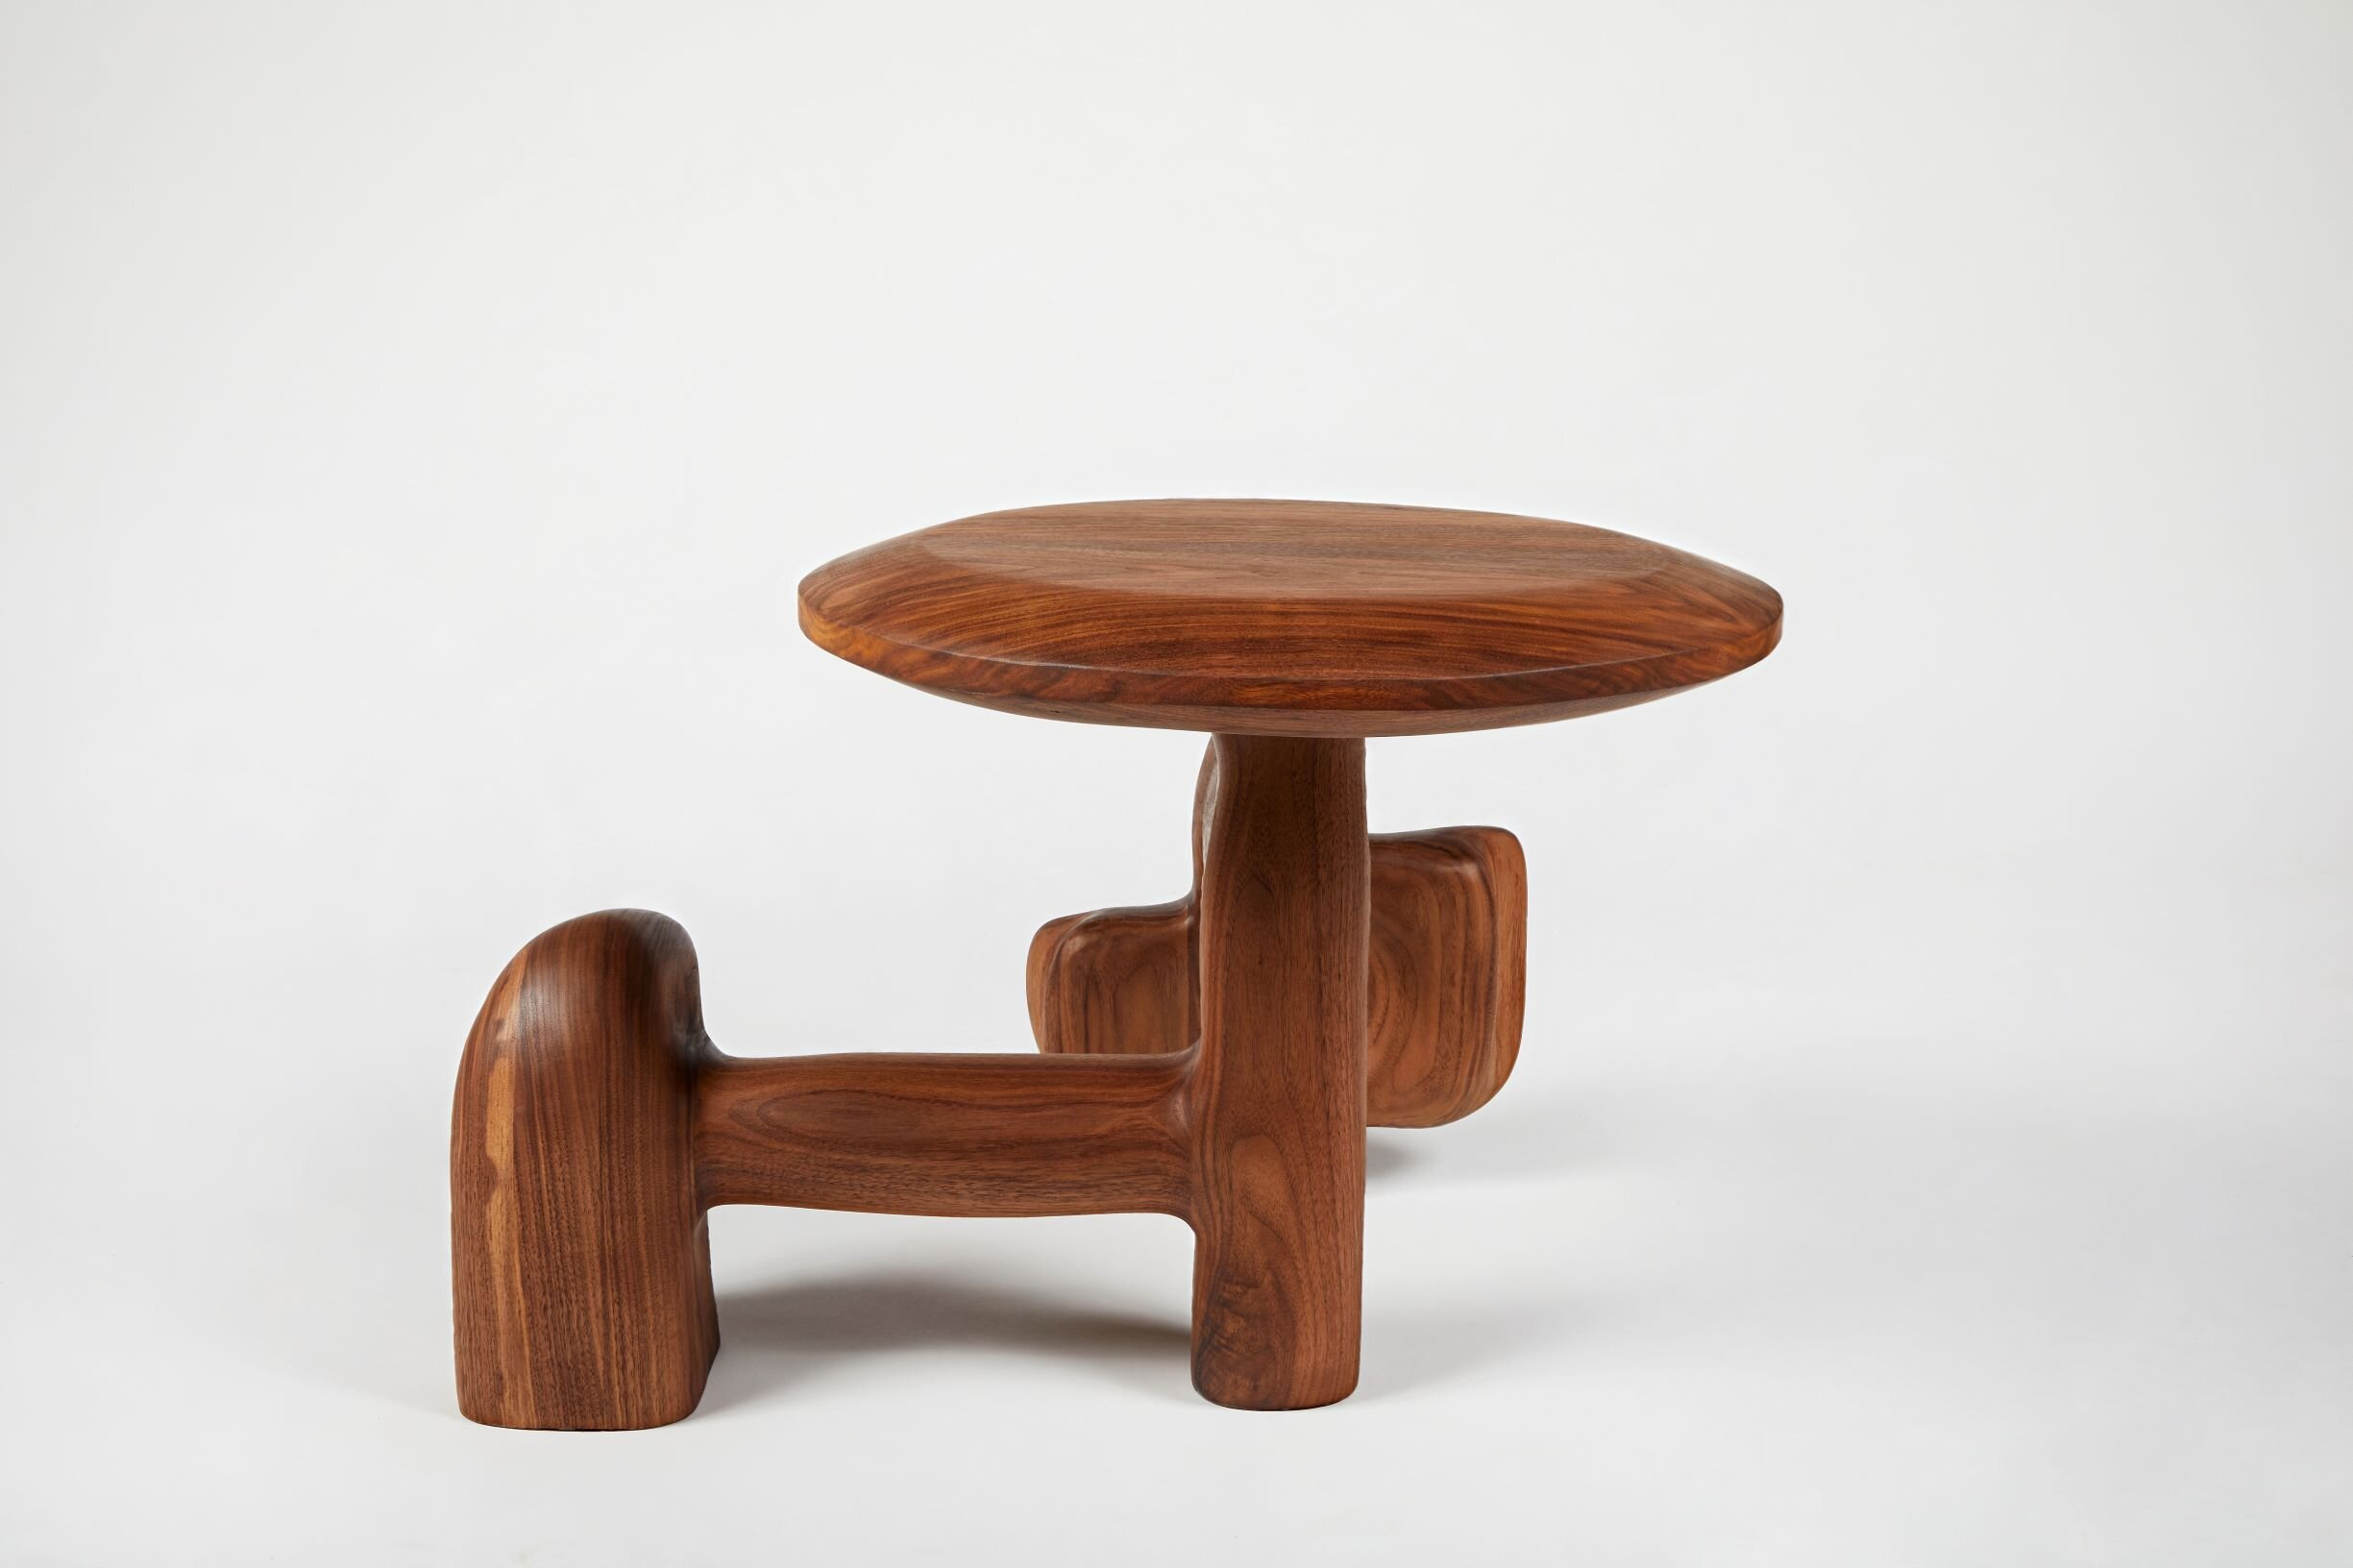 015 Sculptural Side Table by Casey McCafferty